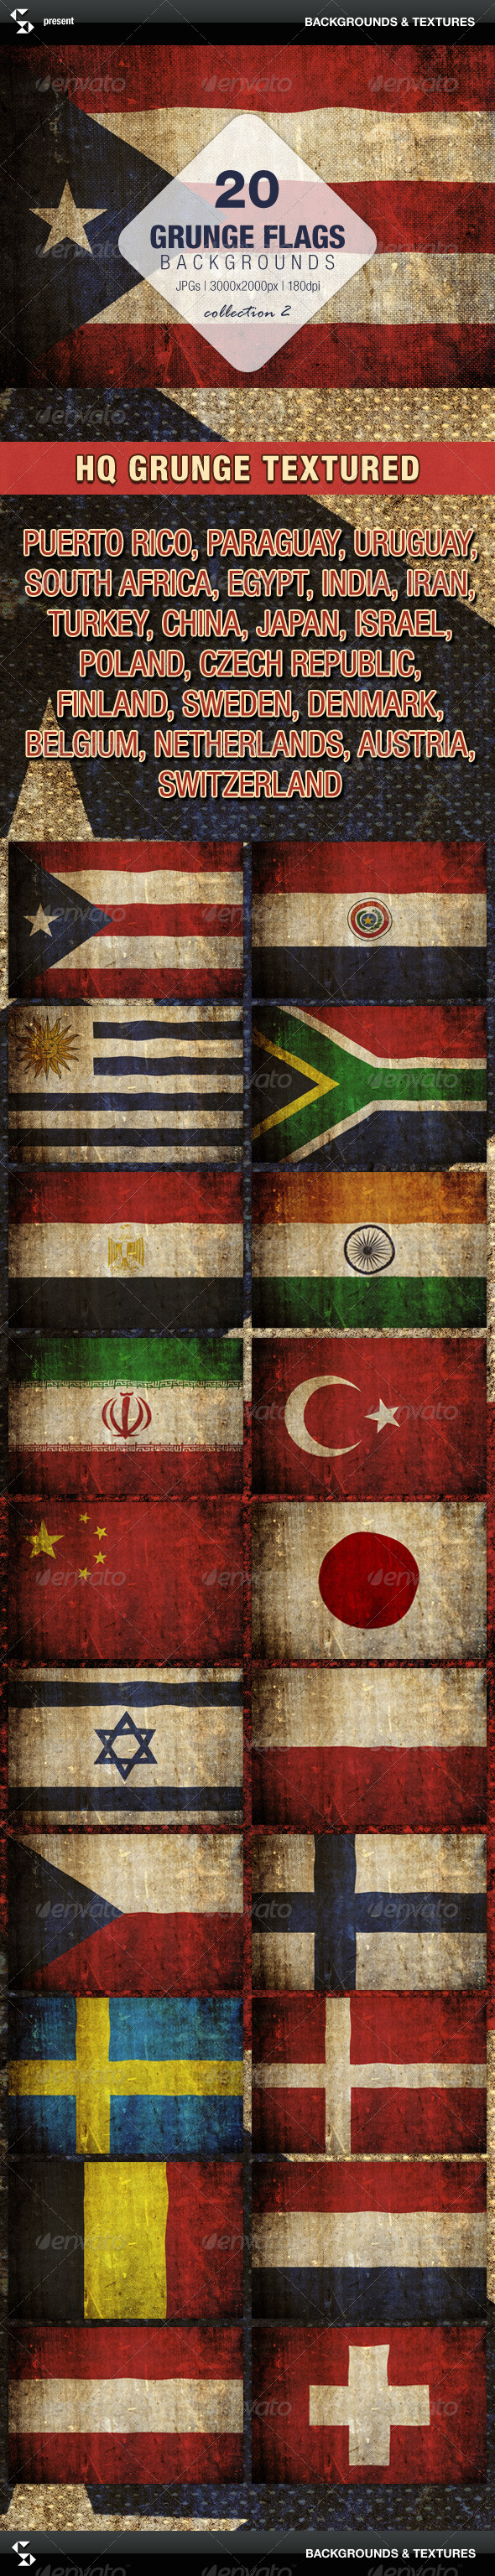 GraphicRiver Grunge Flags 20 Countries Collection 2 7252054